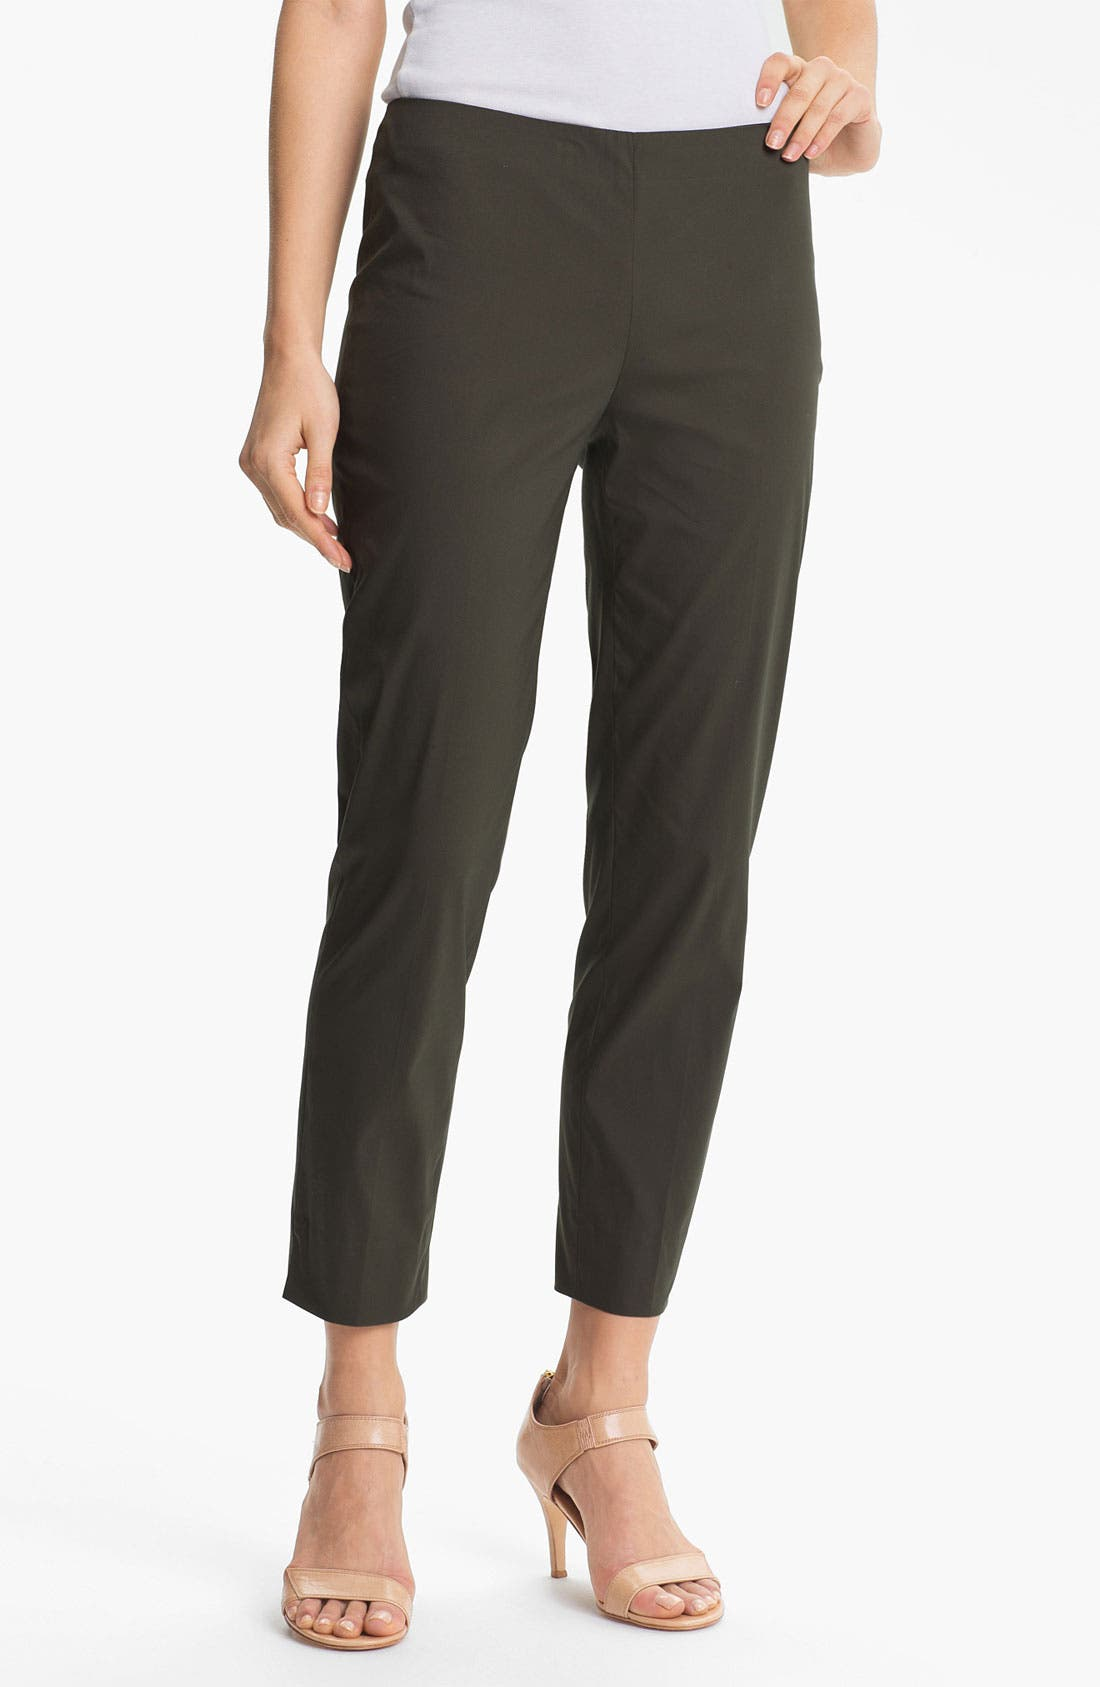 Alternate Image 1 Selected - Lafayette 148 New York 'Stanton' Pants (Online Only)